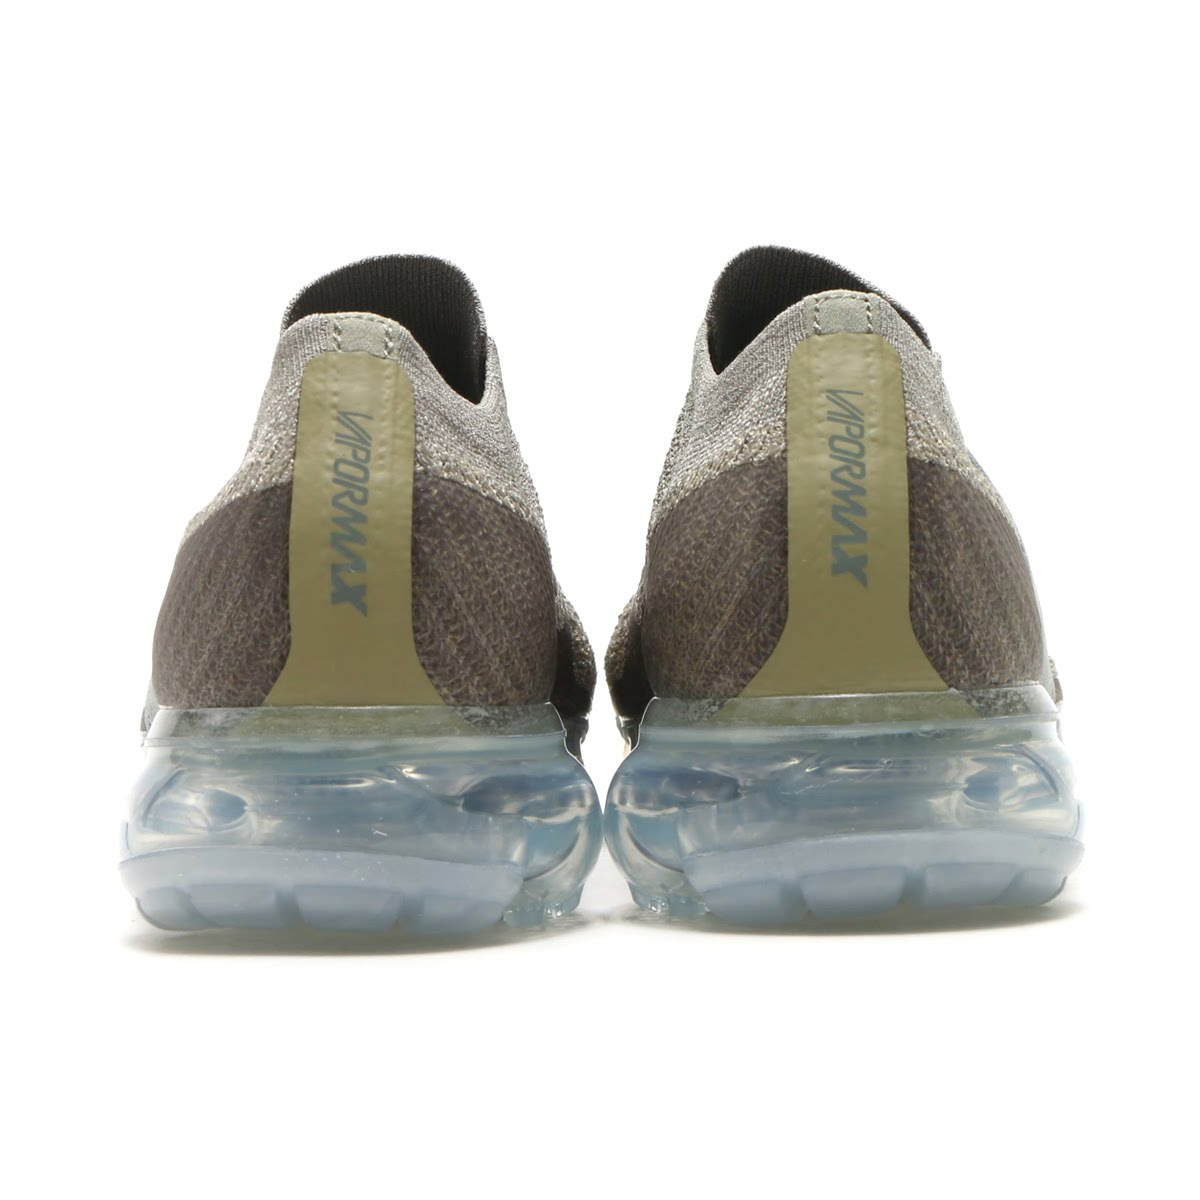 3dc40f8dff91e NIKE WMNS AIR VAPORMAX FK MOC (Nike women air vapor max fried food knit  mock) (DARK STUCCO CLAY GREEN-NEUTRAL OLIVE) 18SP-S